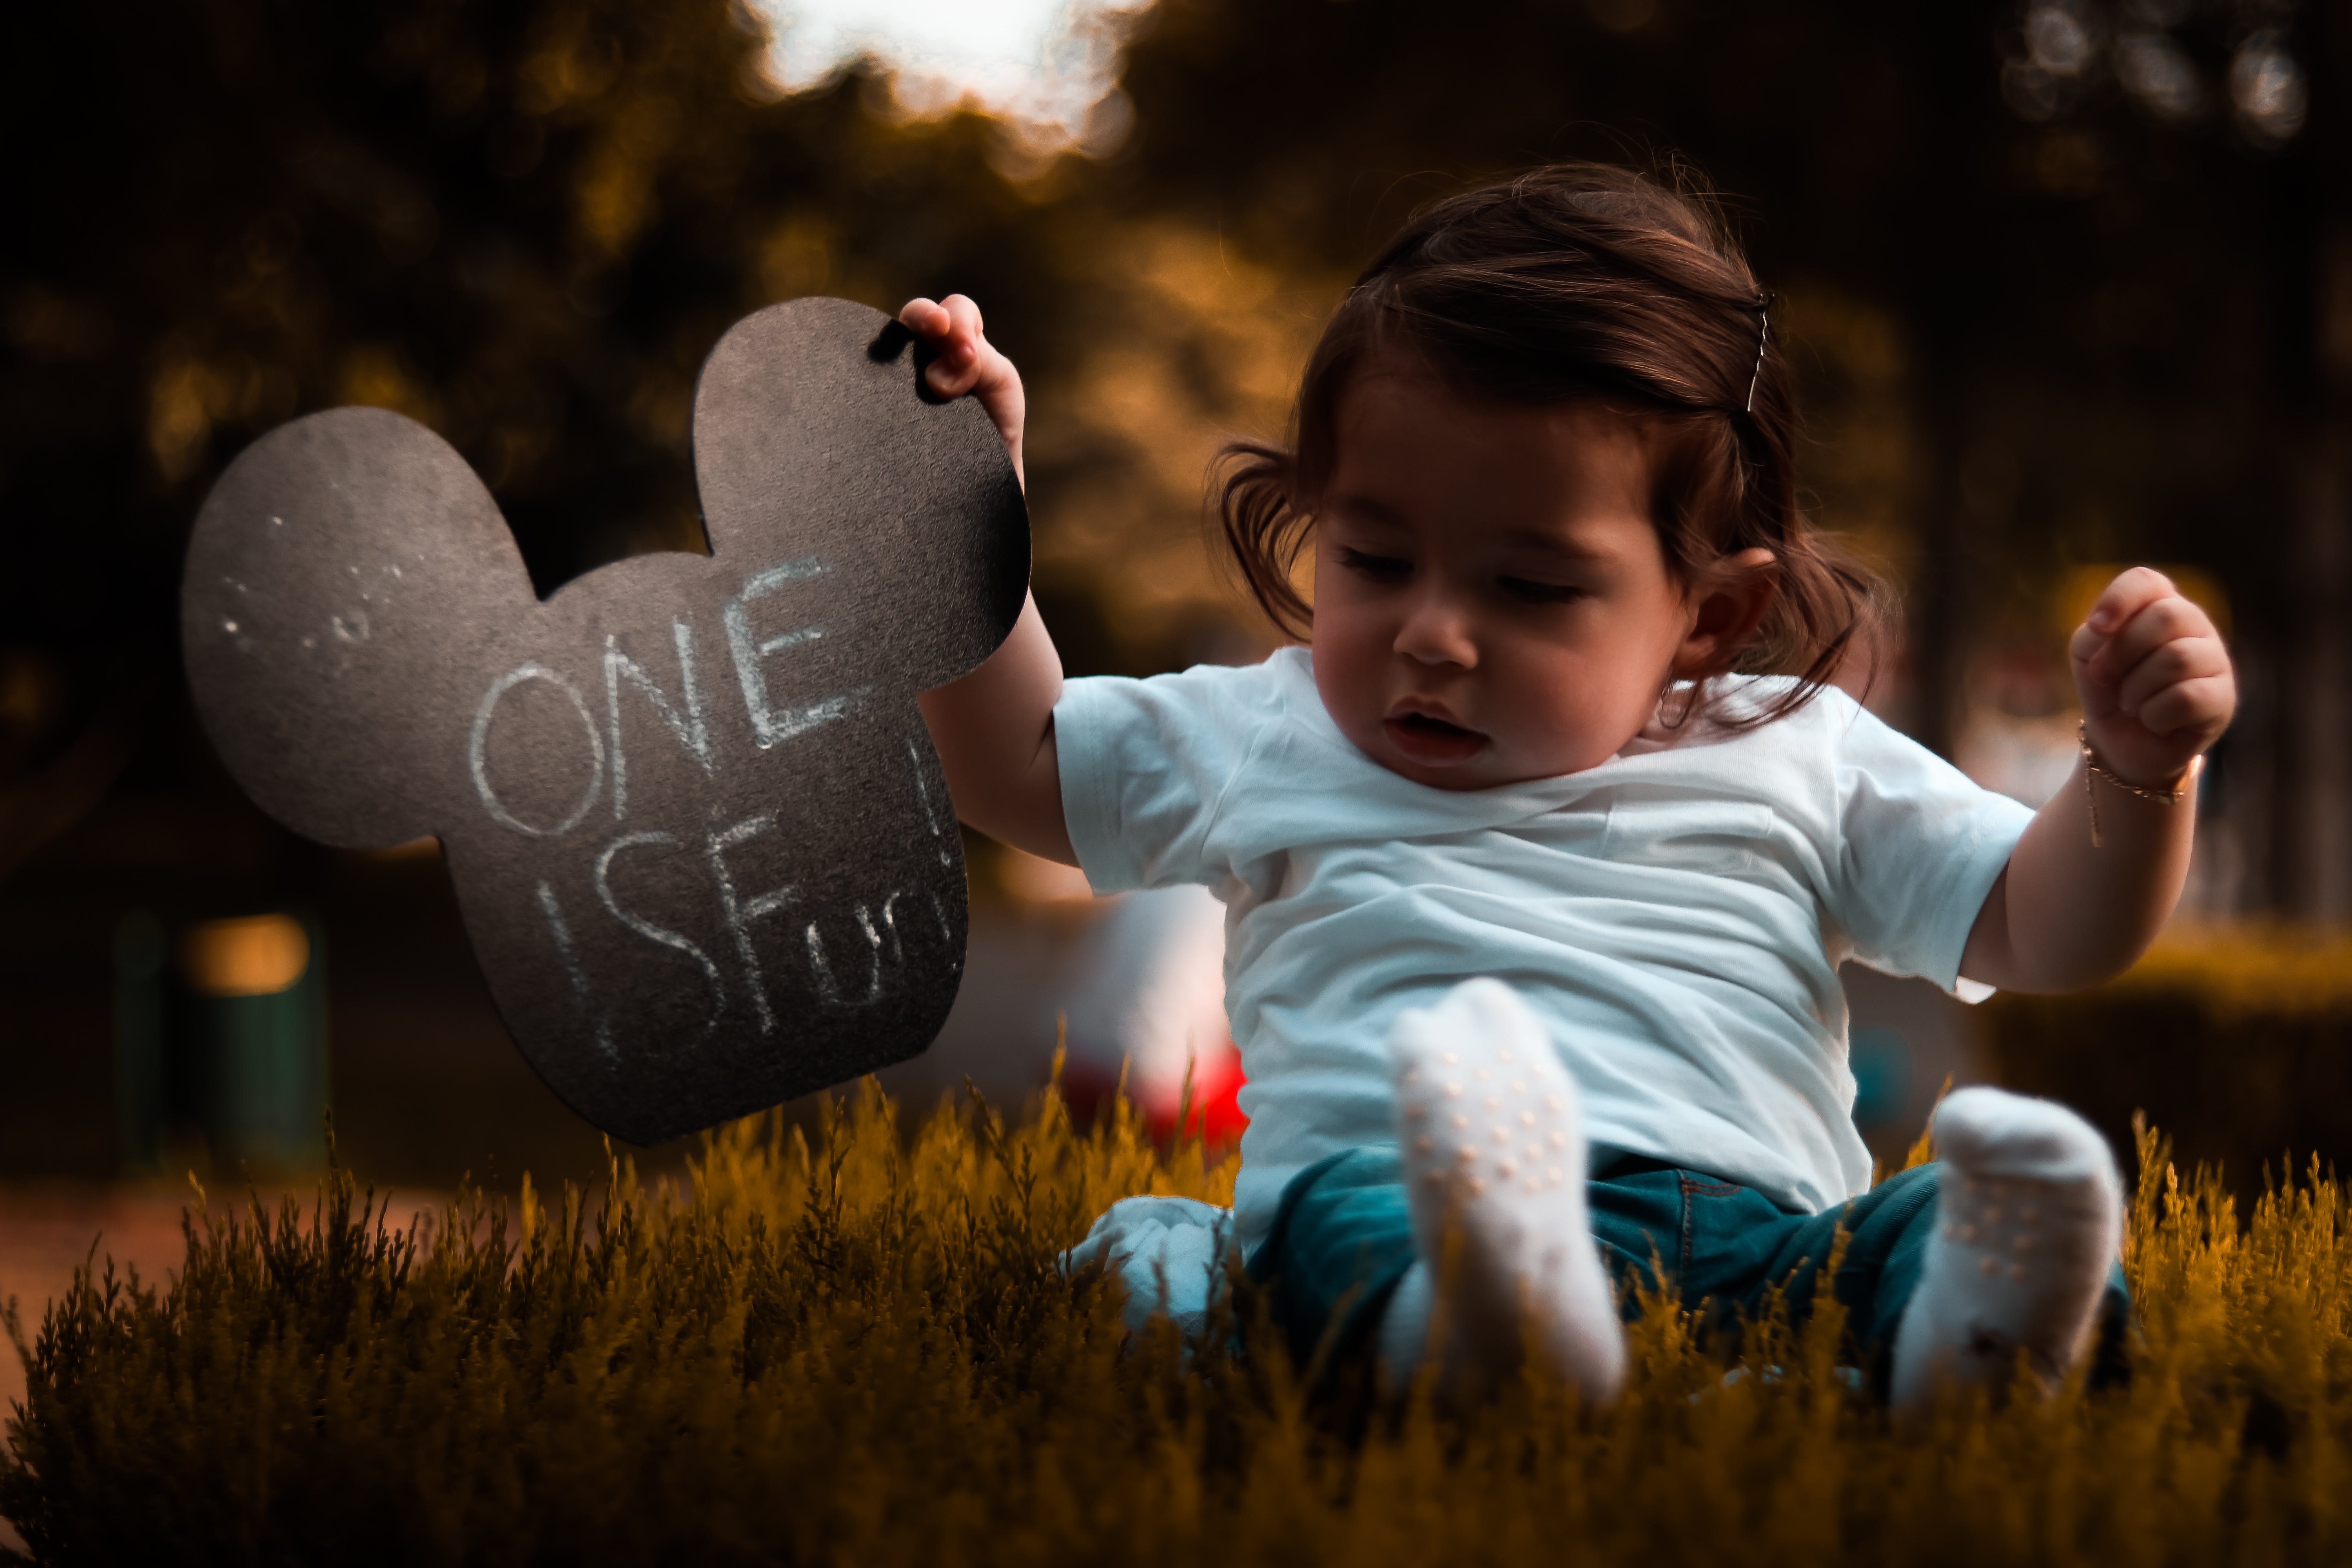 Baby Wearing Blue Shirt Holding Mickey Mouse Head Cutout Sitting on Grass